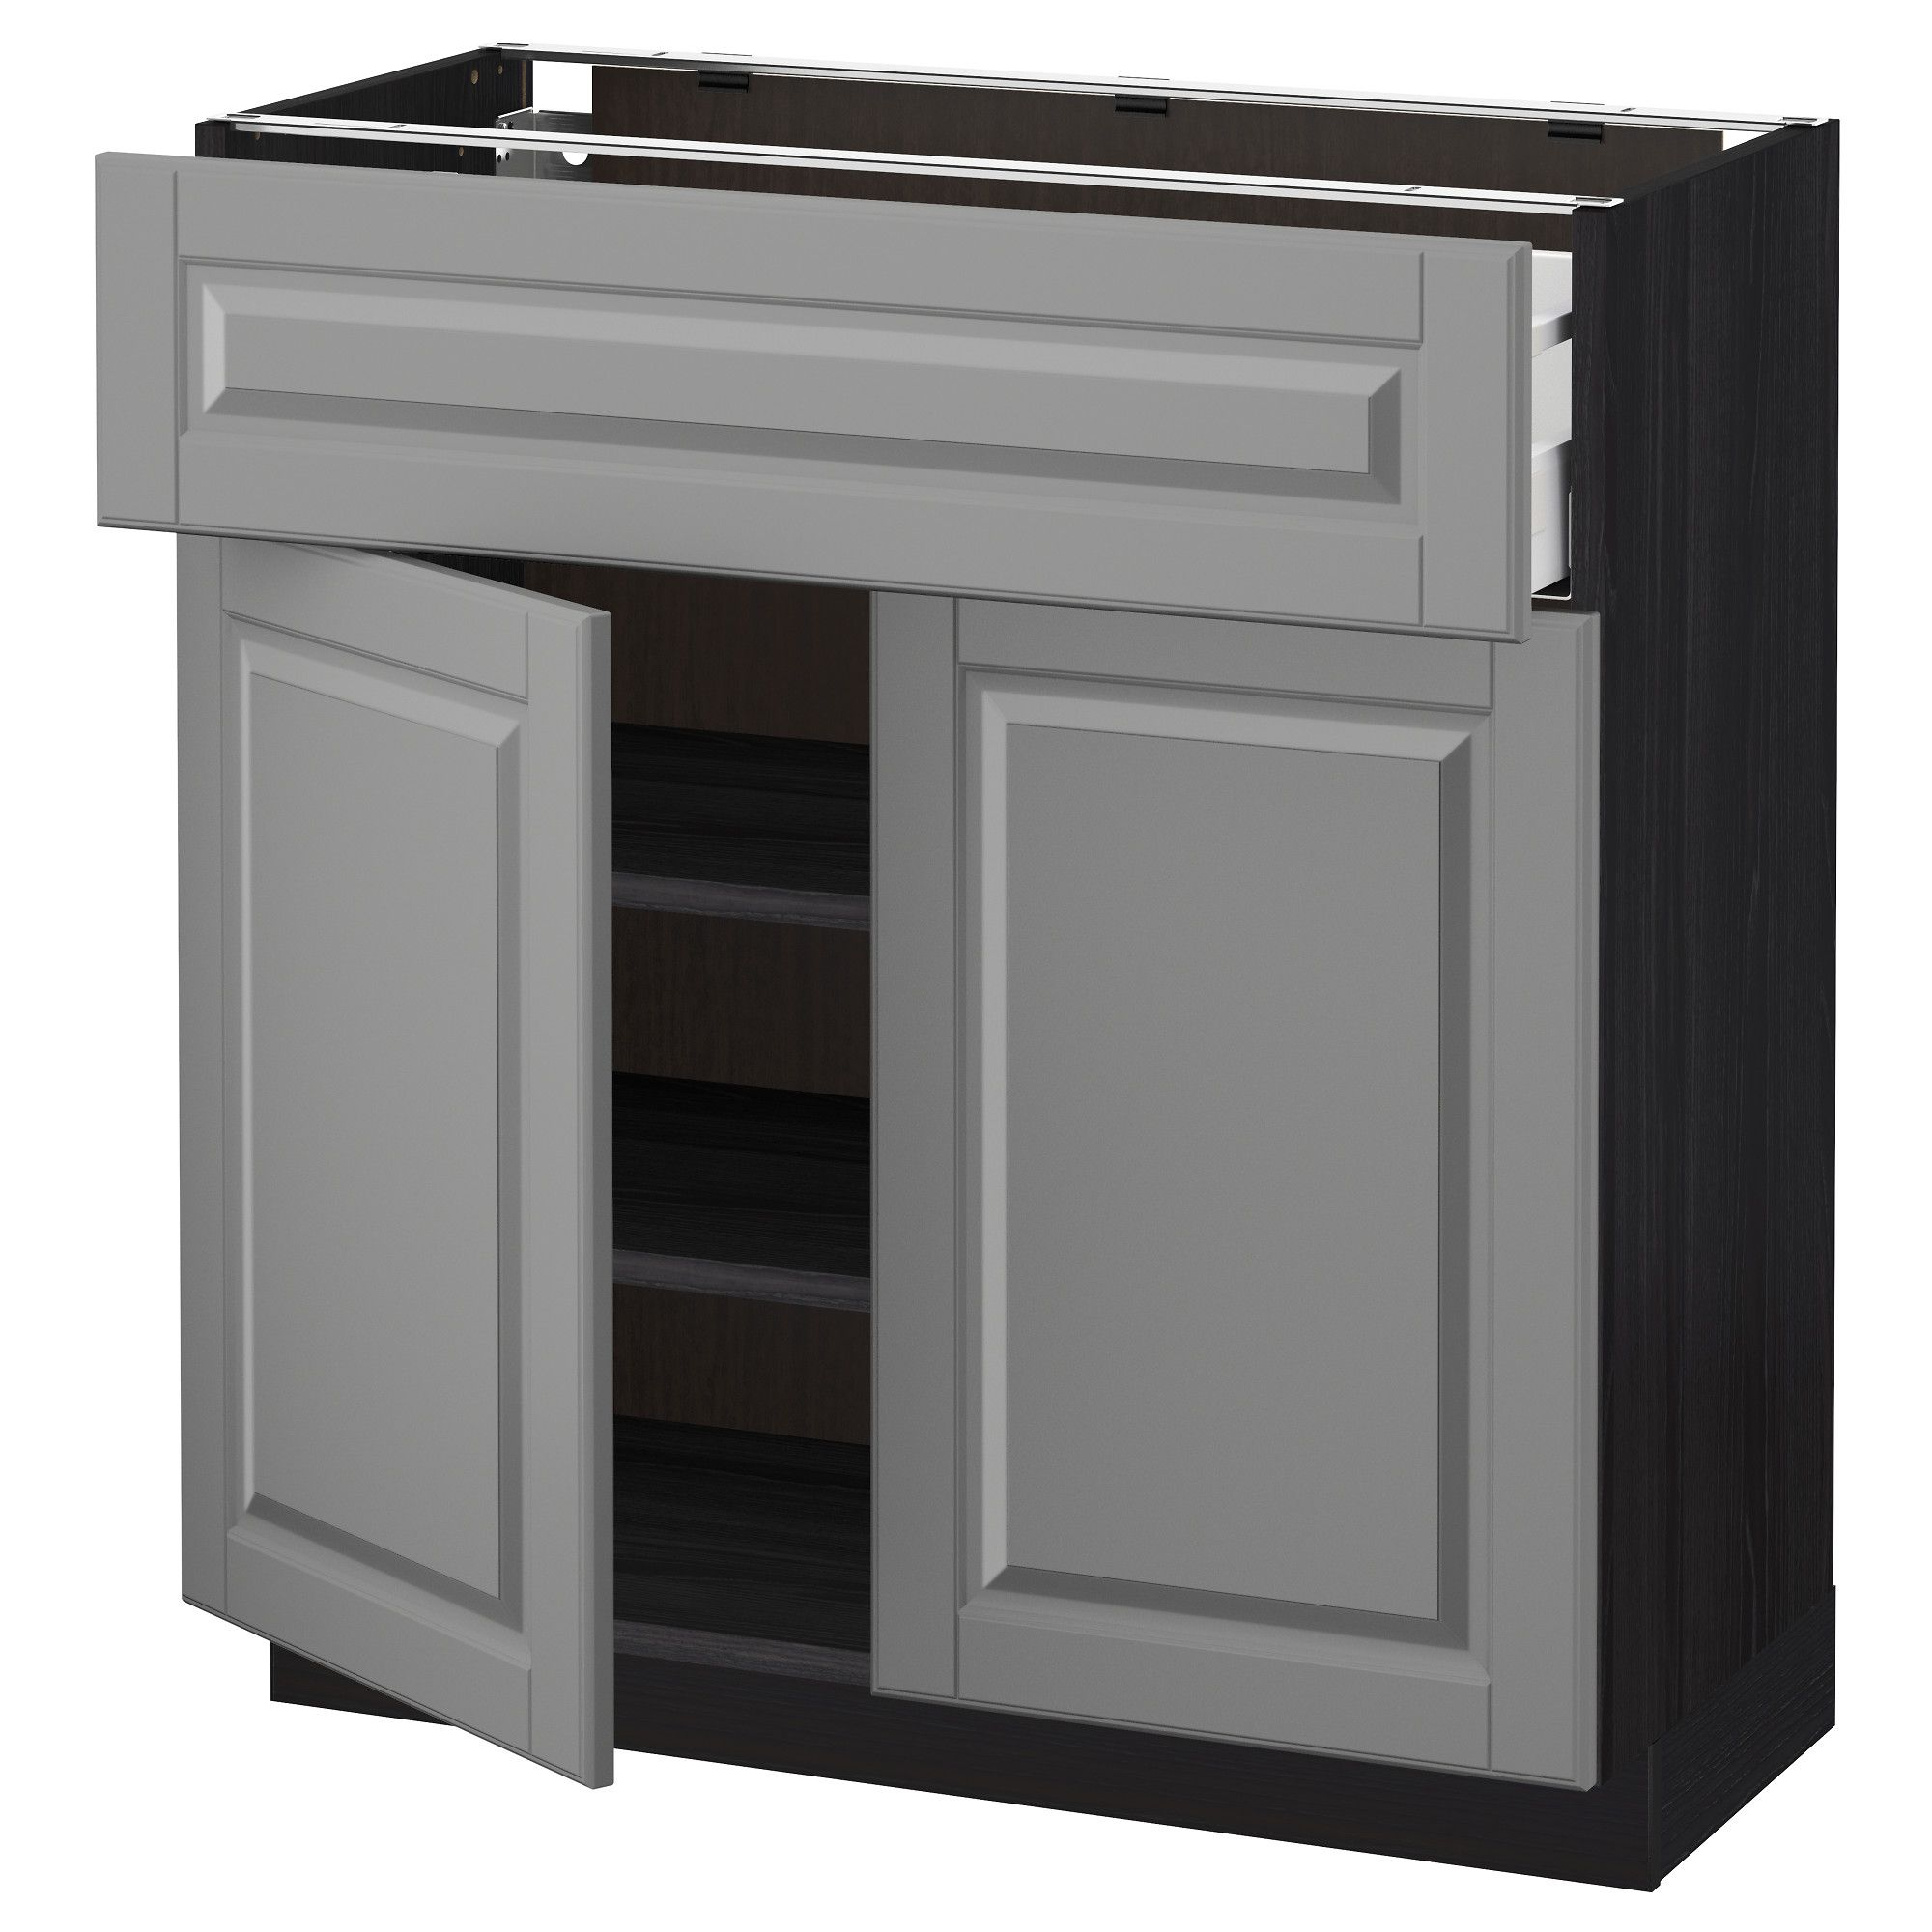 METOD Modular Kitchens, IKEA (With images) | Base cabinets ...